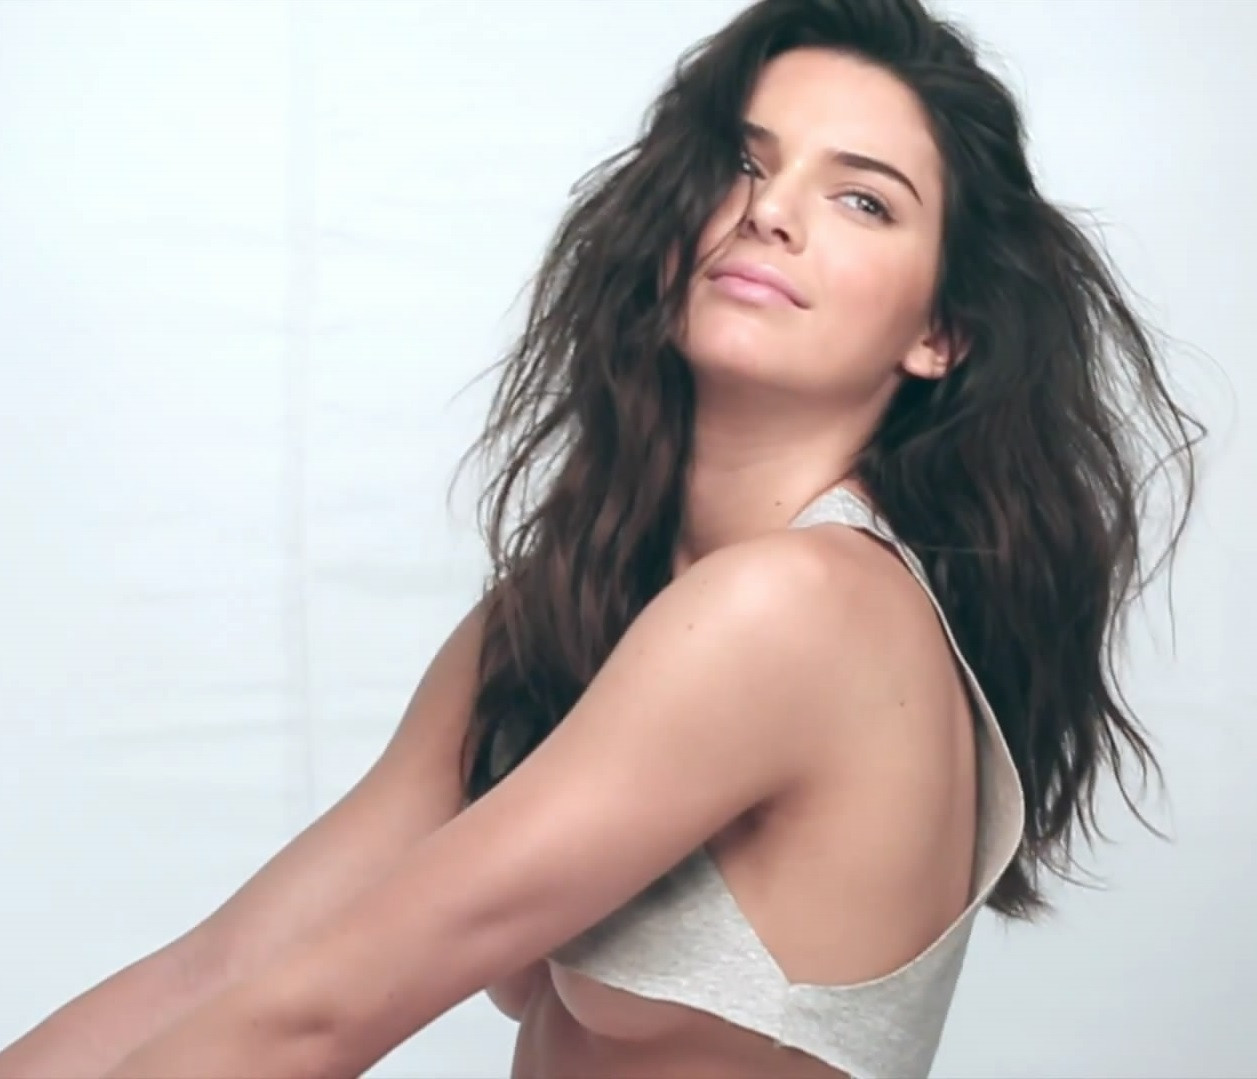 Kendall Jenner Topless 81 TheFappening.nu